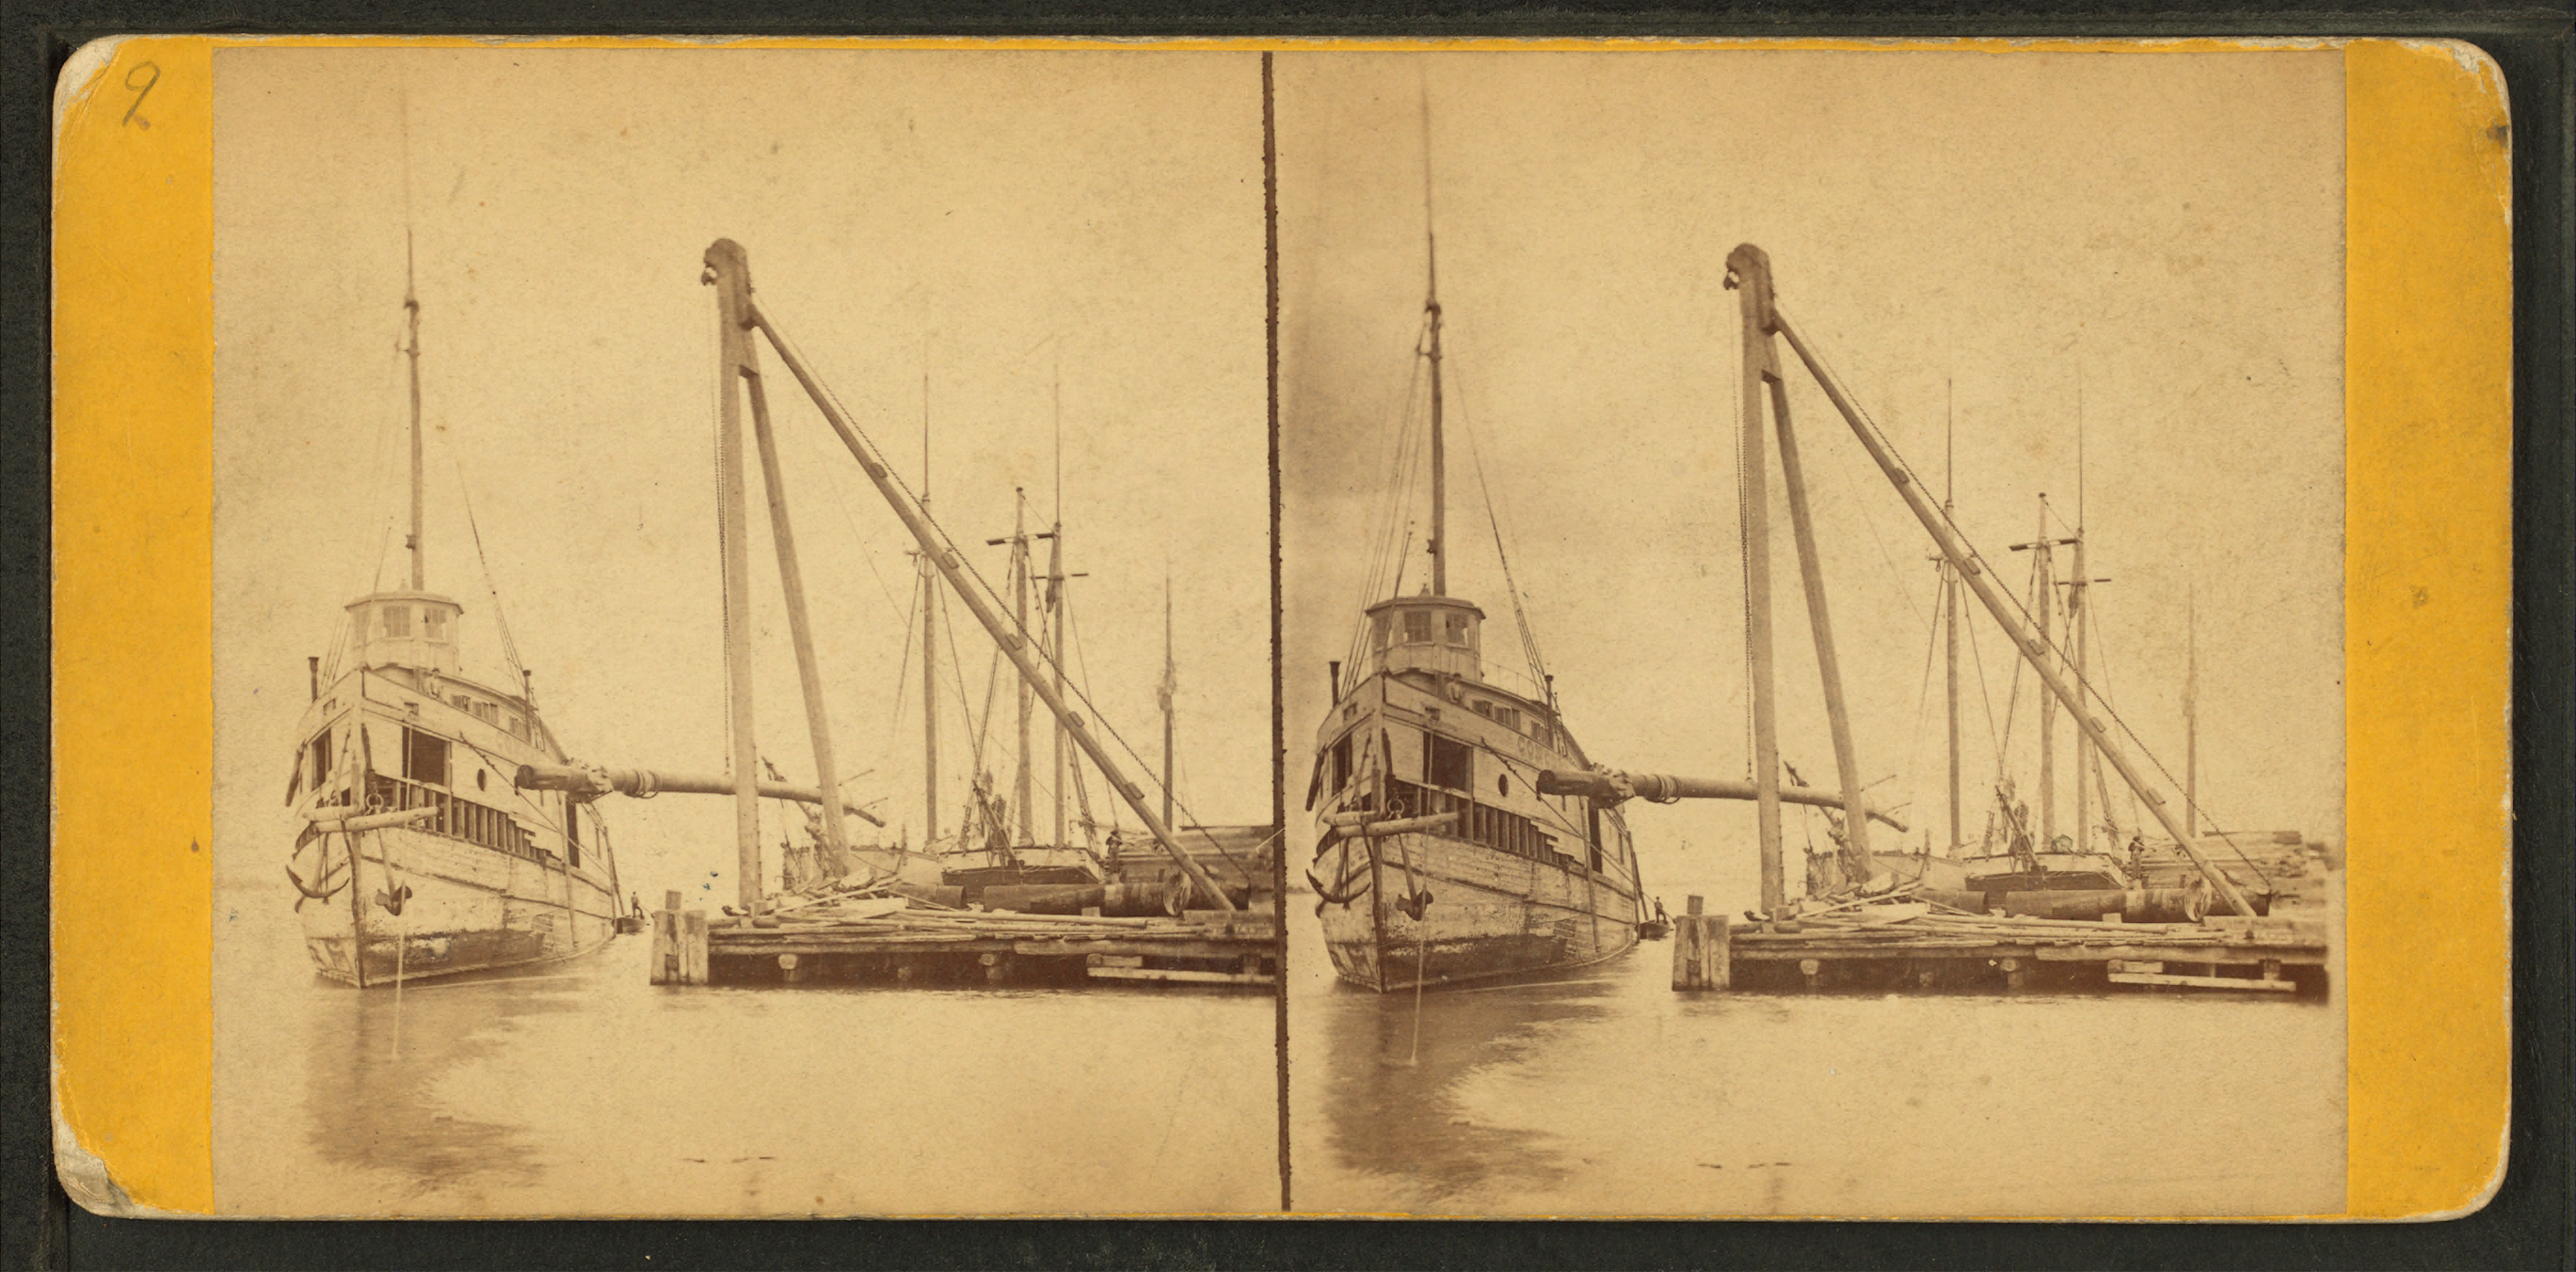 Stereographic photo of a ship at Detroit Dry Dock by Jex J. Bardwell (1824-1903) (image from Wikimedia Commons).